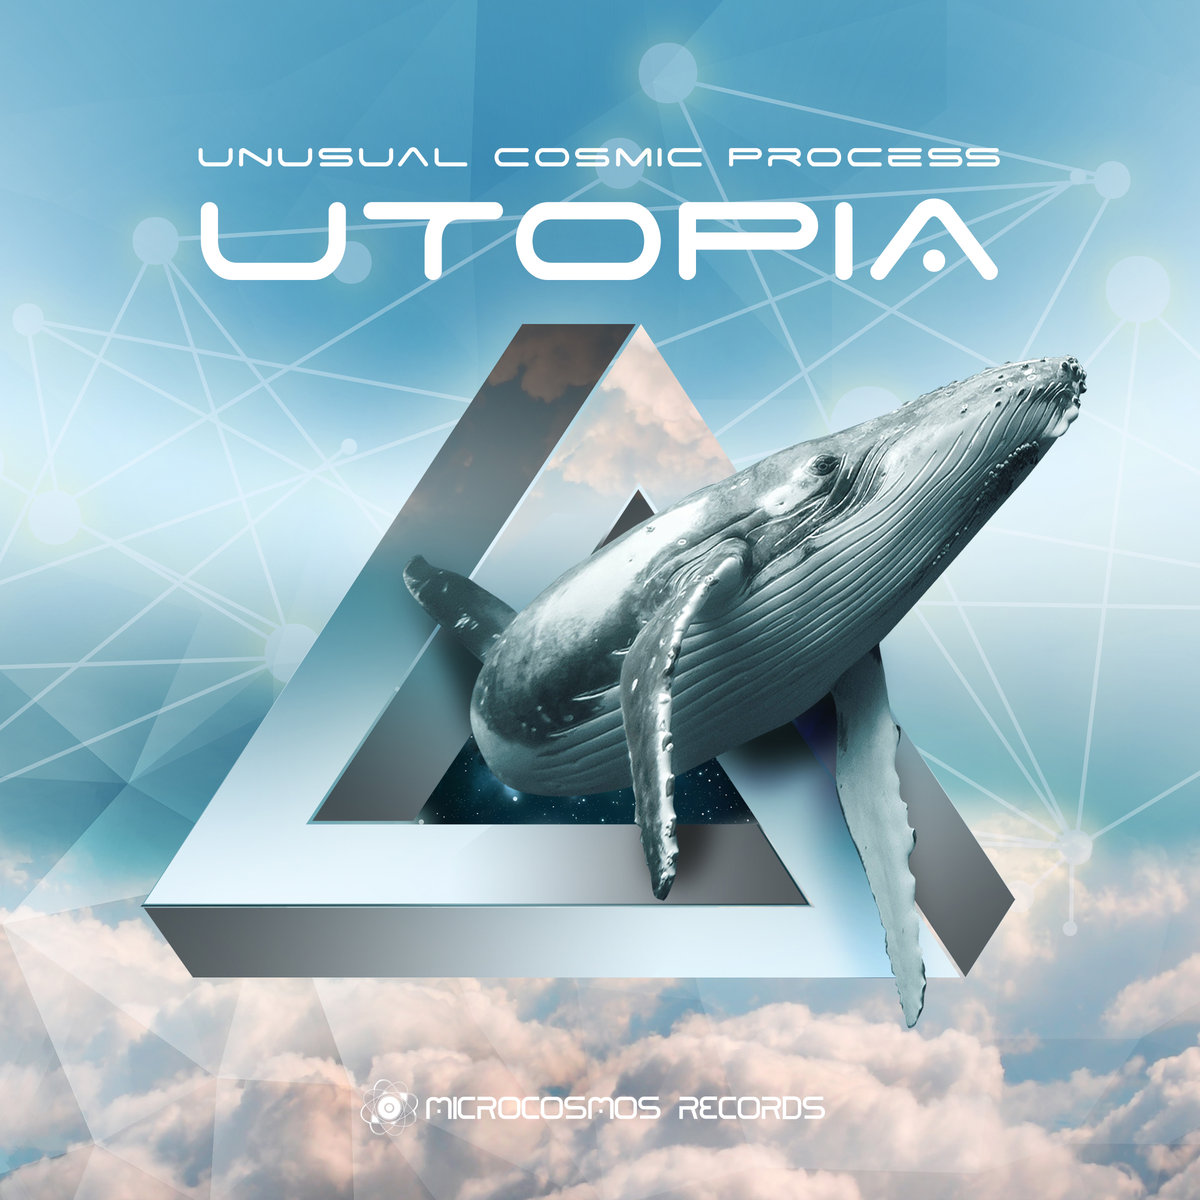 Unusual Cosmic Process - Last Night In Tokyo @ 'Utopia' album (ambient, chill-out)